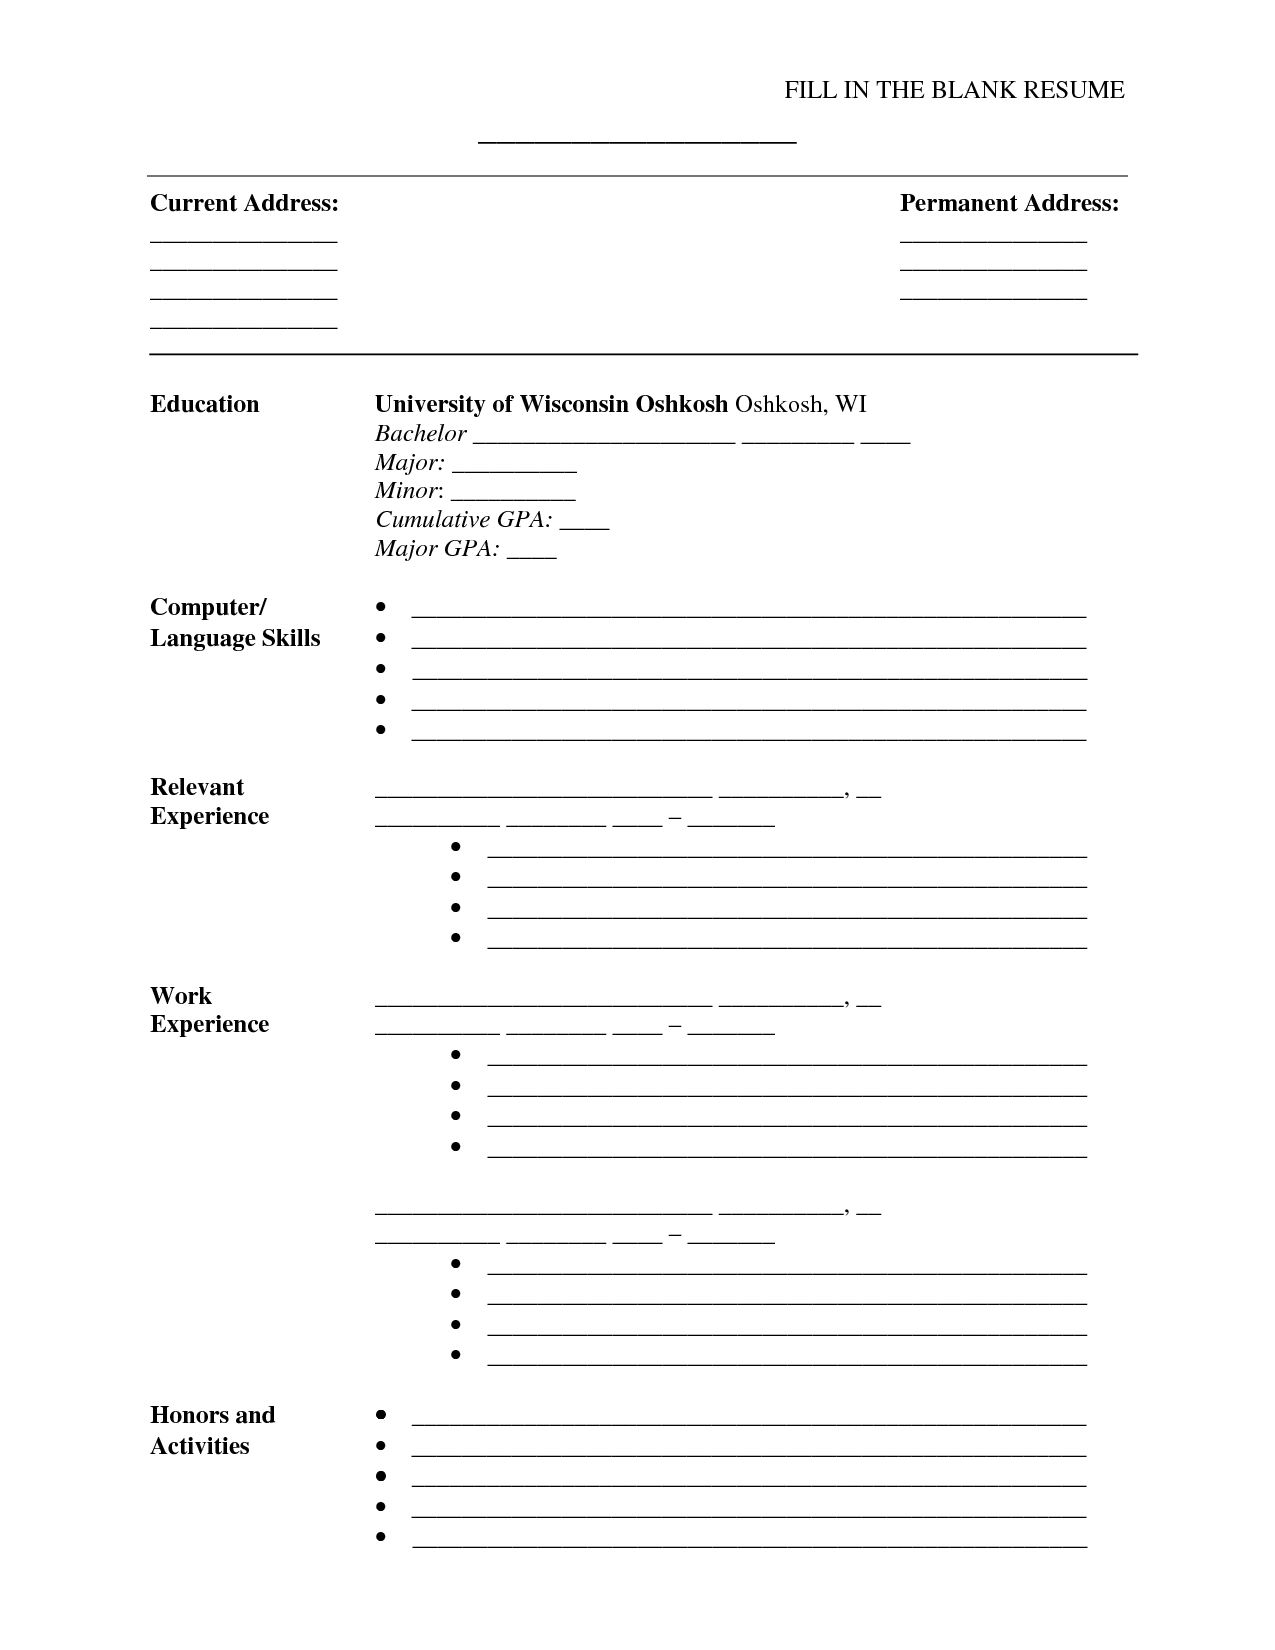 Blank Resume Form Fill In The Blank Resume Pdf Http Resumecareer